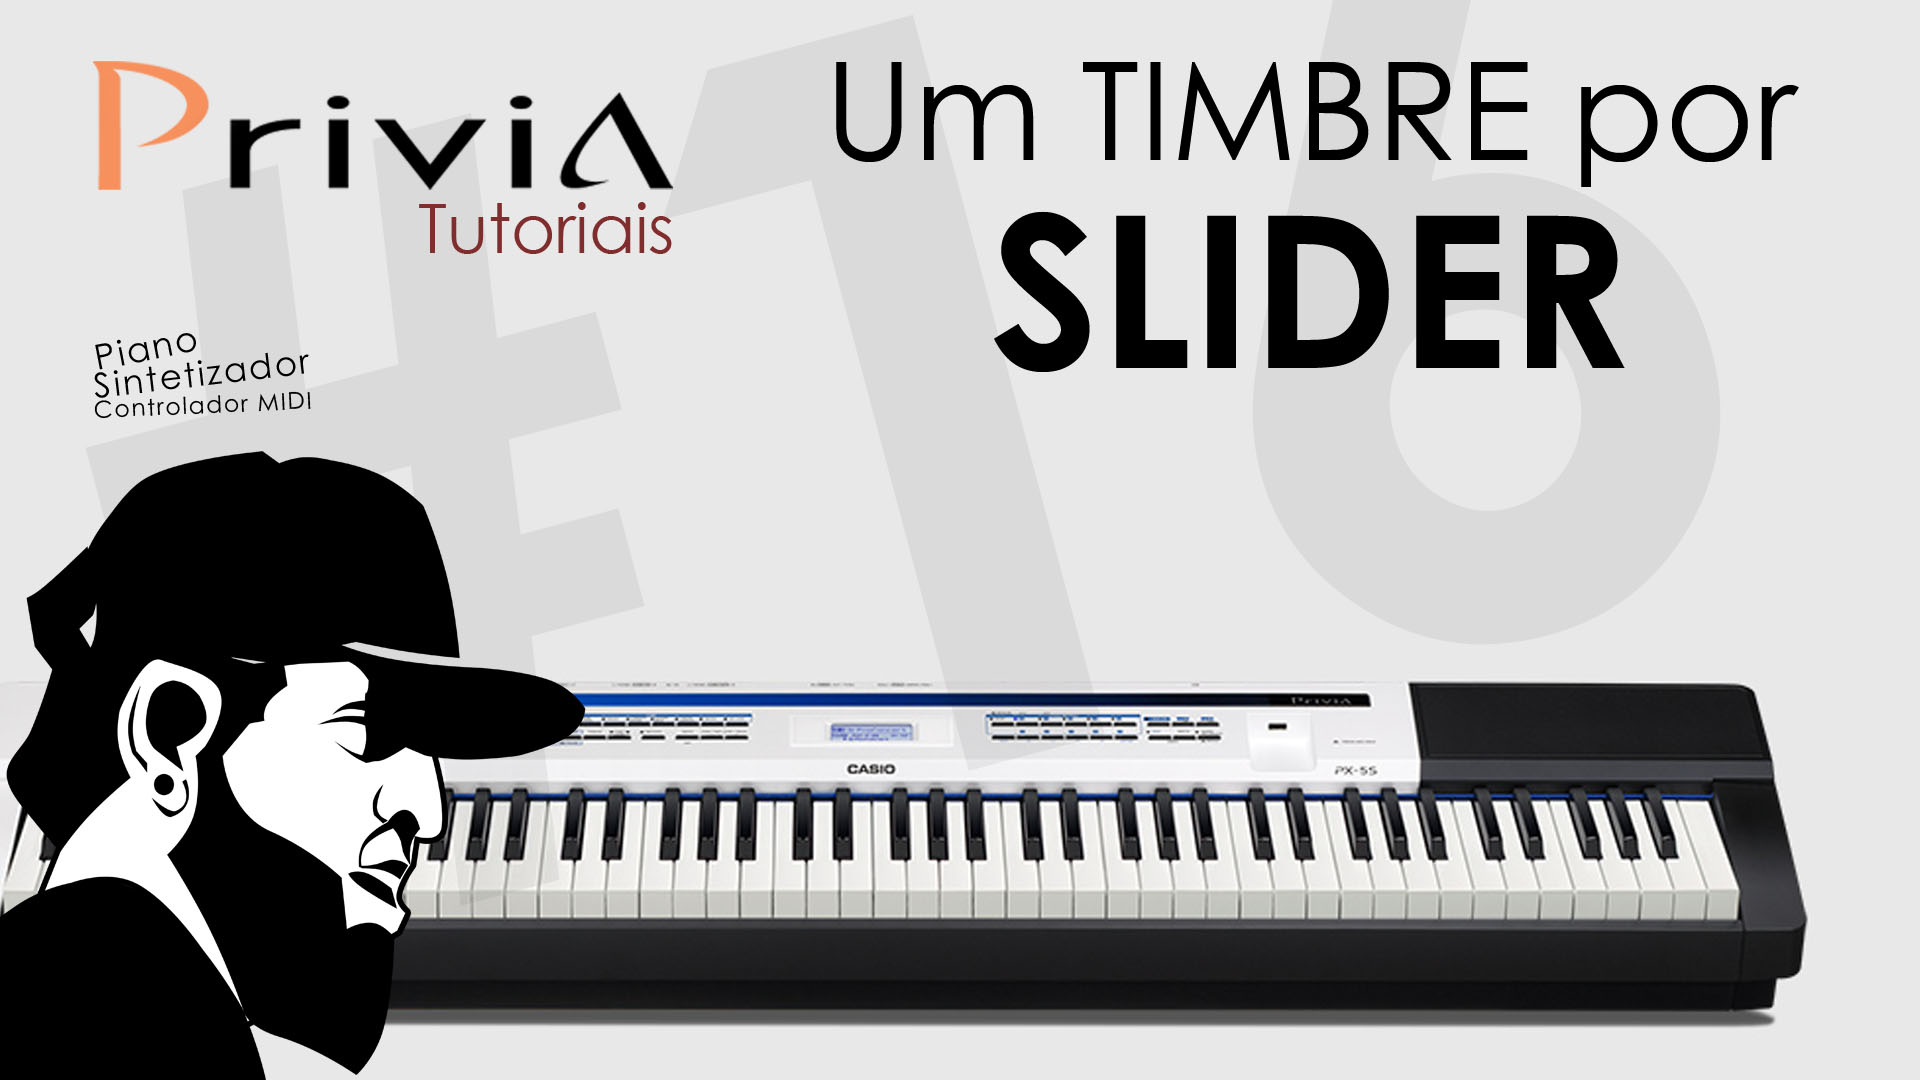 Tutorial Casio Privia PX 5S #16 – Stage Settings – Como Configurar Um Timbre Pra Cada Slider?